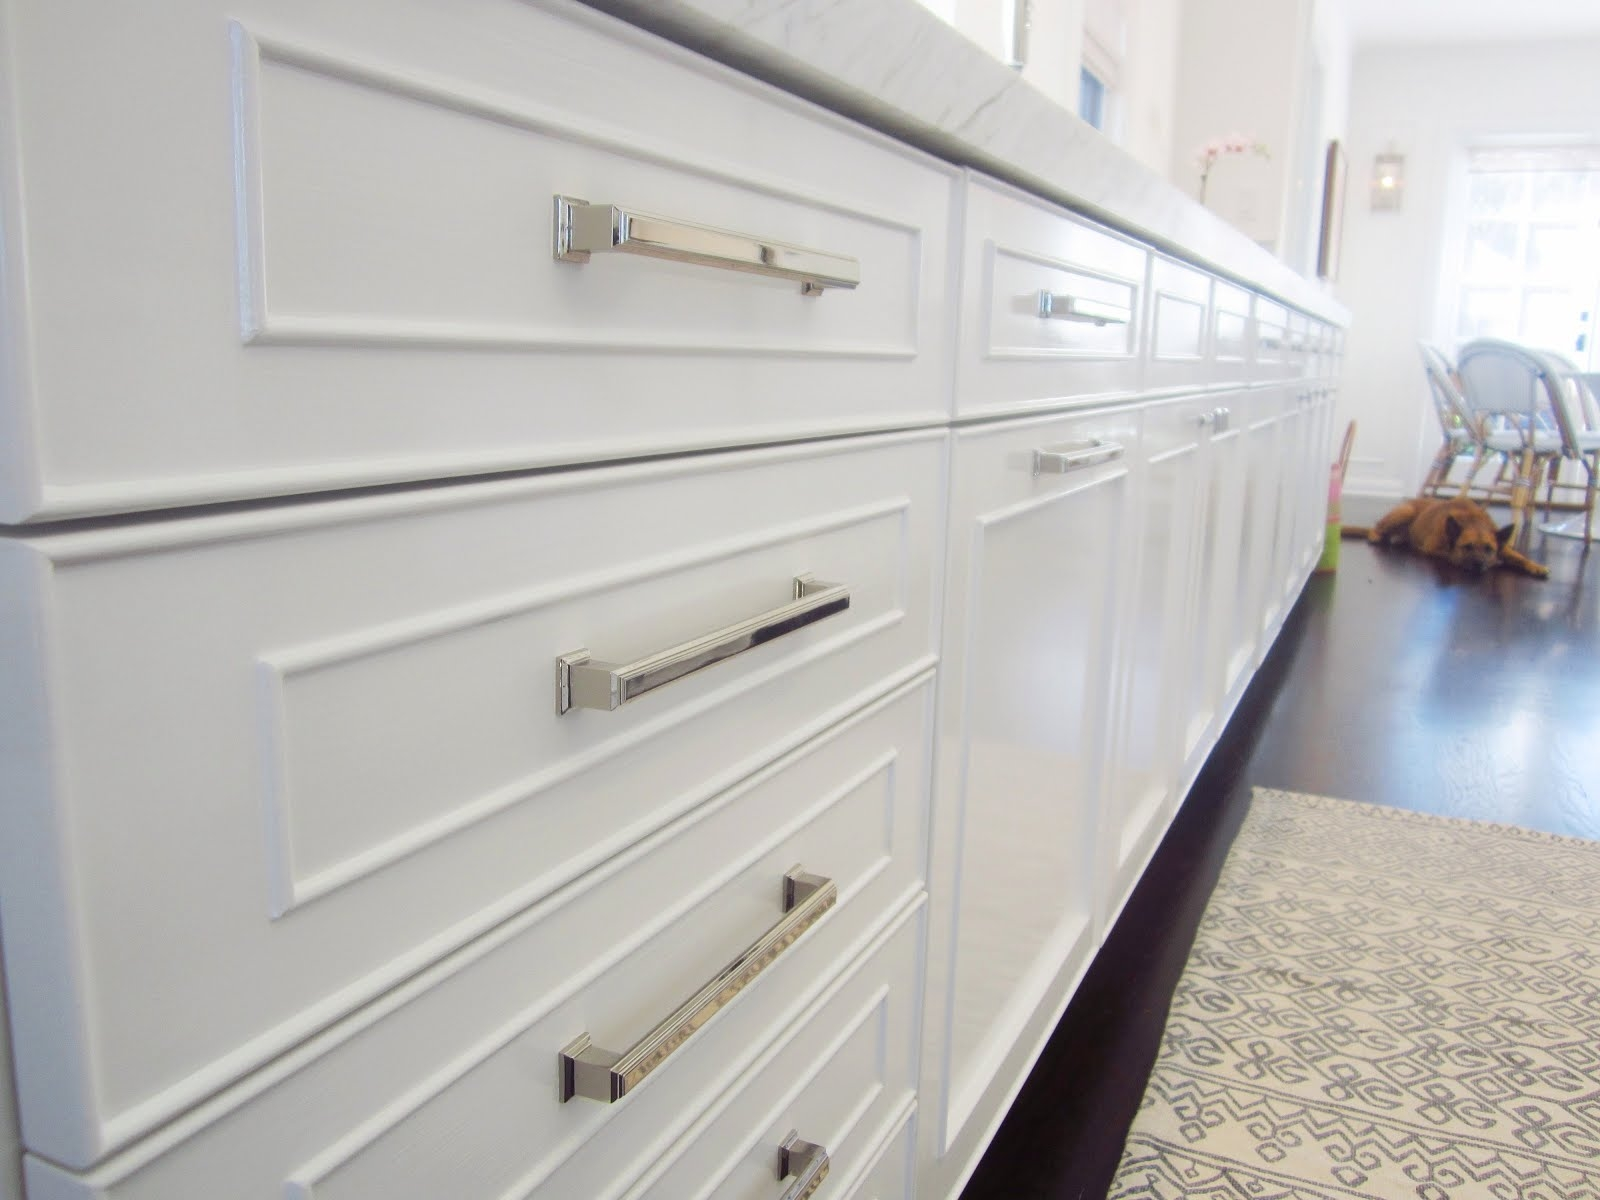 Permalink to Stainless Kitchen Cabinet Hardware